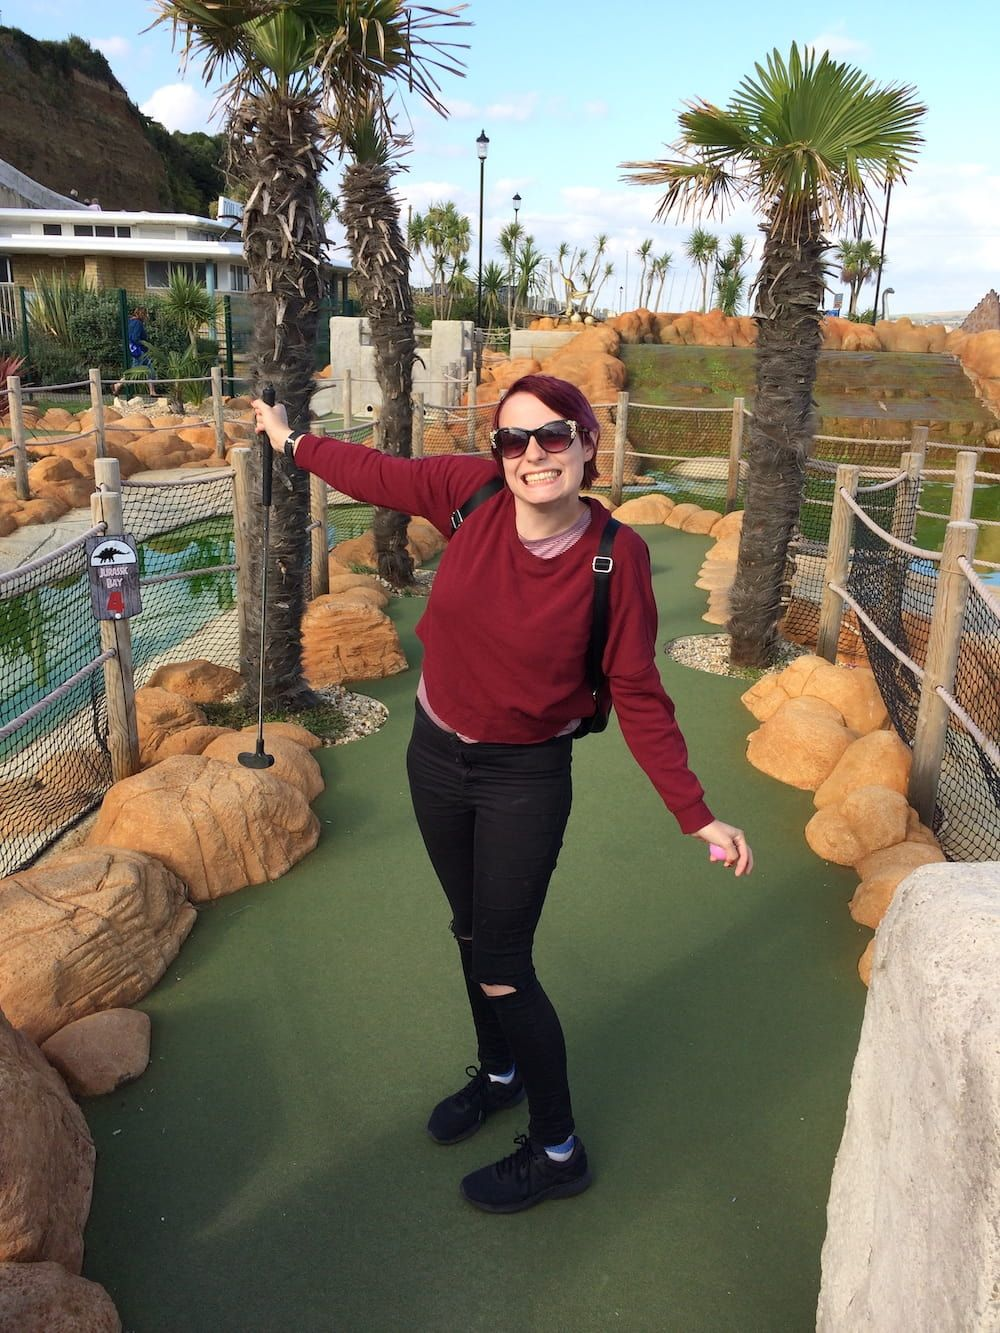 Stacey smiling playing mini golf